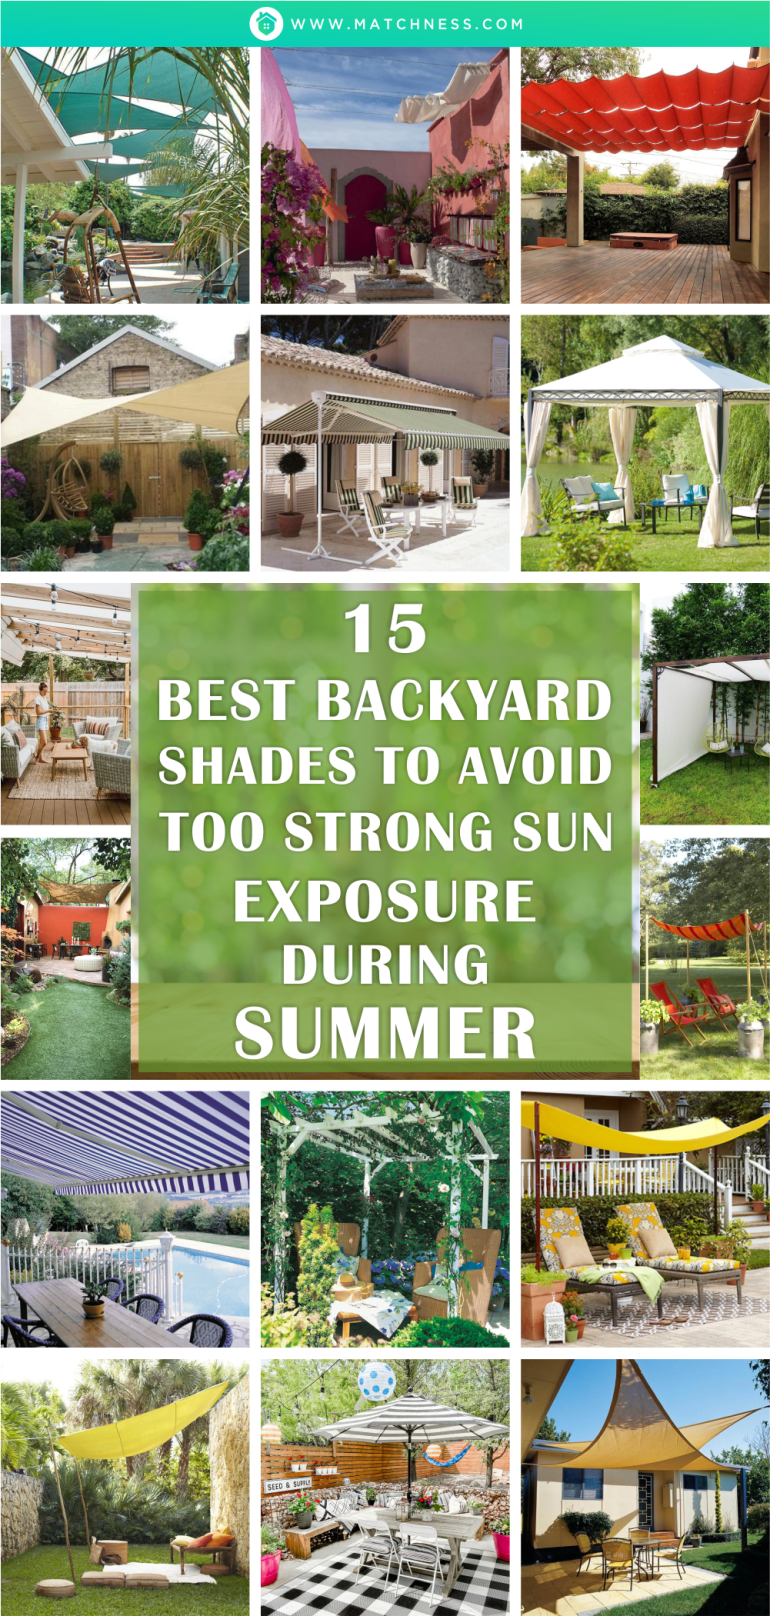 15-best-backyard-shades-to-avoid-too-strong-sun-exposure-during-summer1